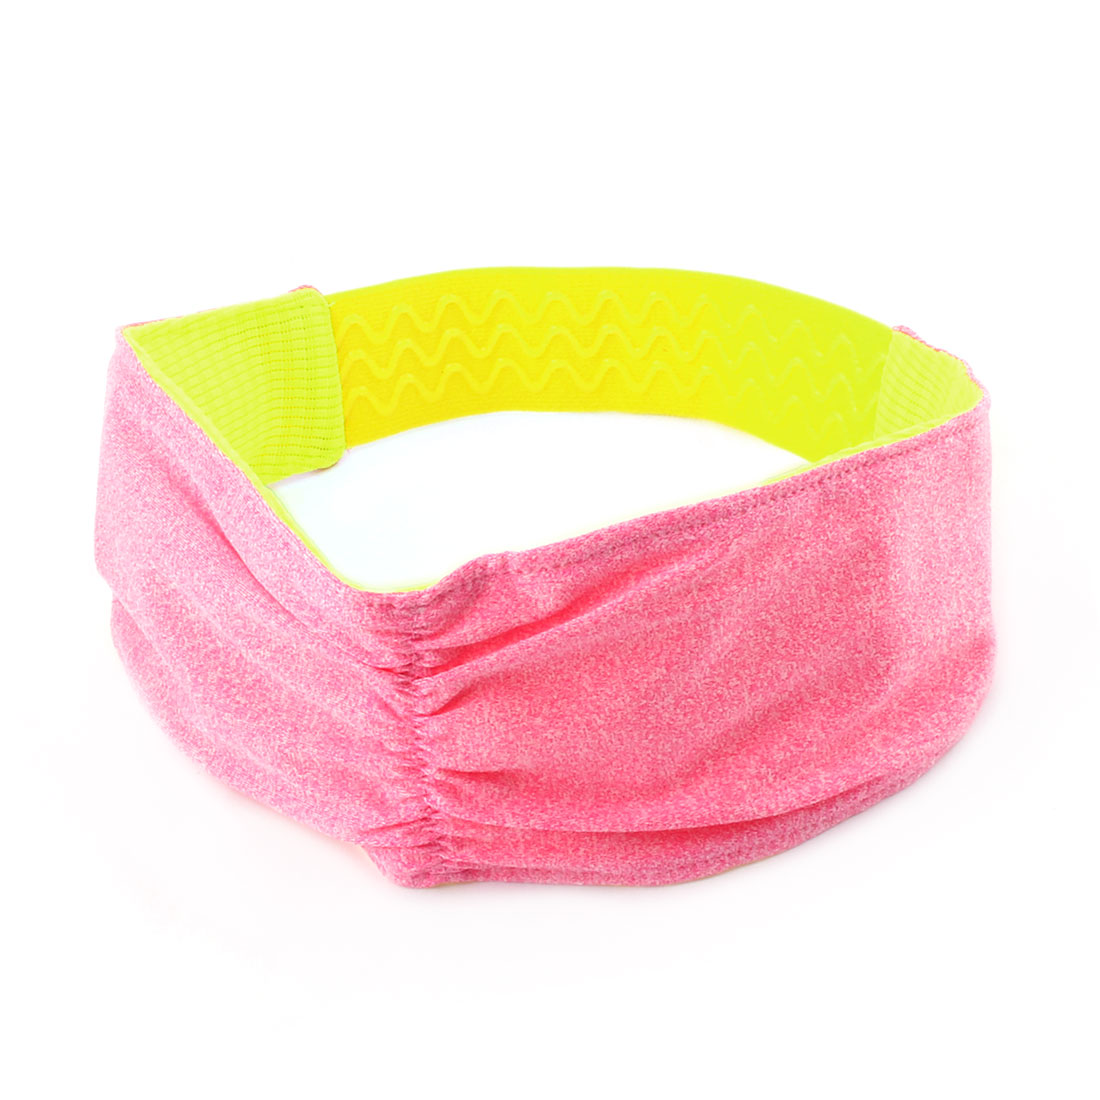 Outdoor Exercise Cotton Blend Stretch Sweat Wicking Sports Headband Fuchsia Yellow